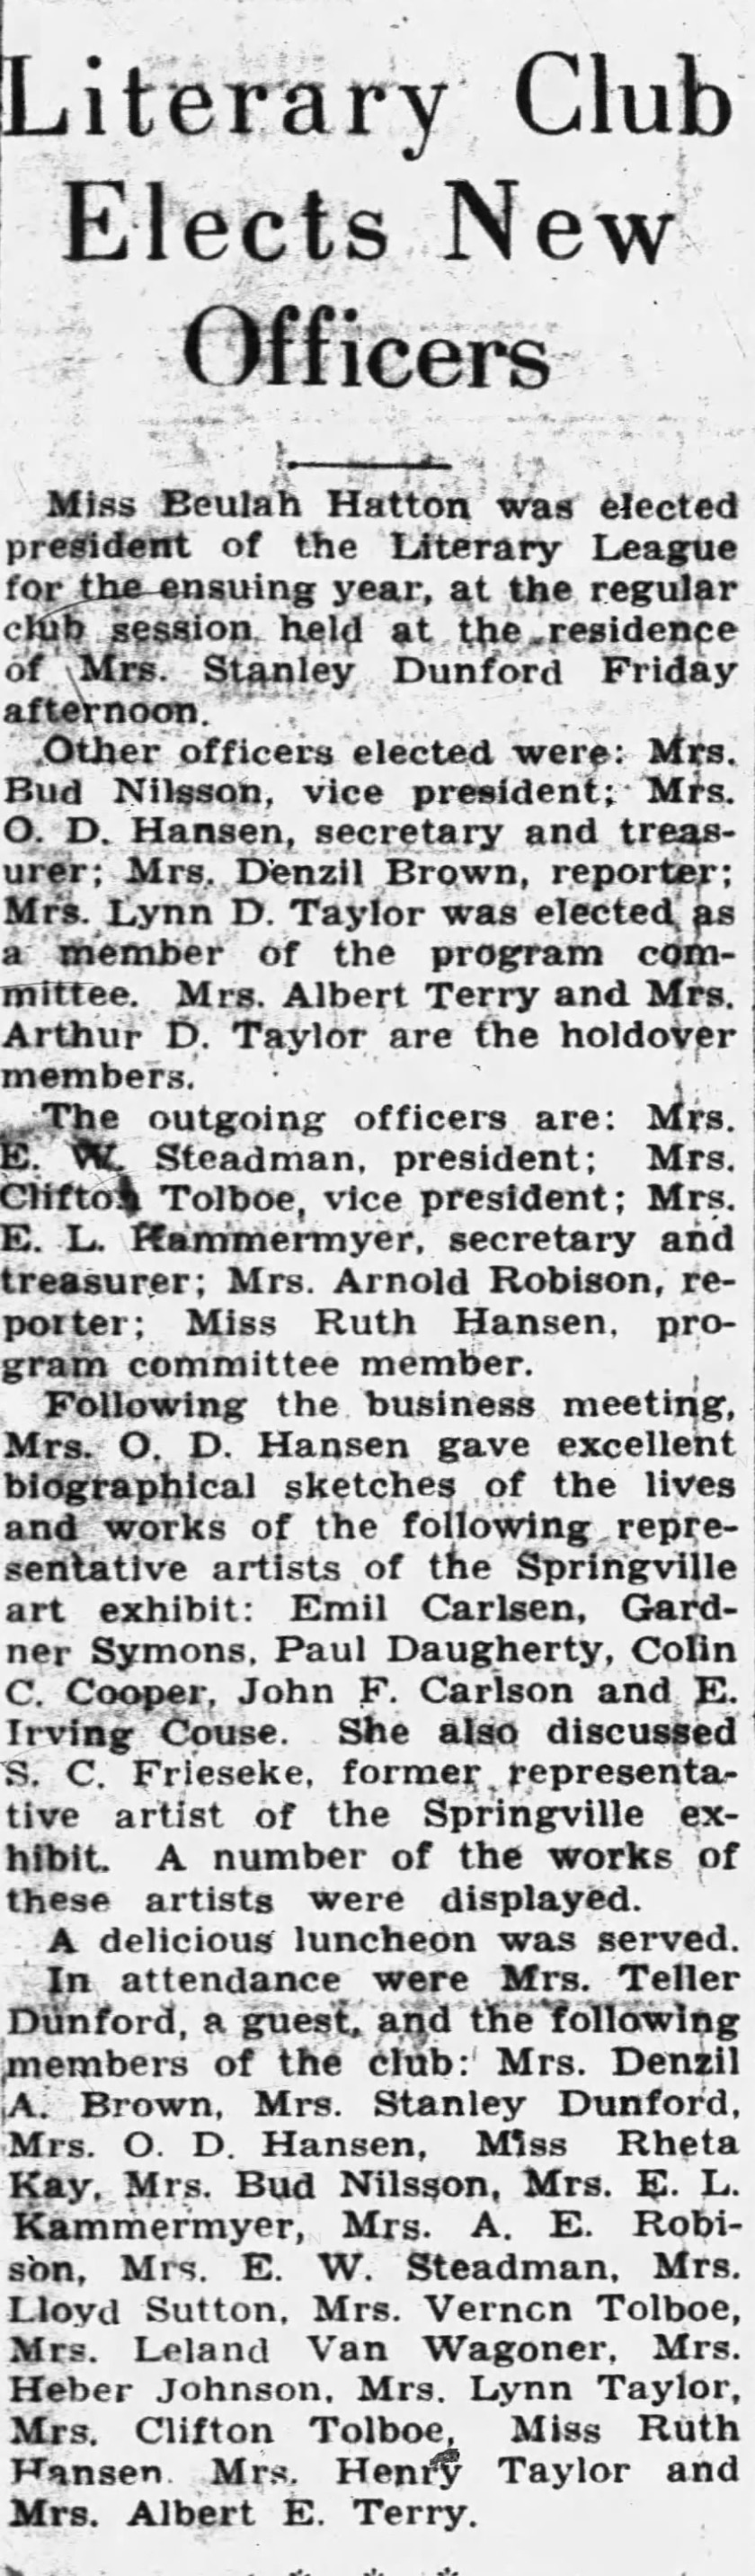 "The Sunday Herald, Provo, UT, ""Literary club elects new officers"", Sunday, April 3, 1932, page 3, not illustrated"